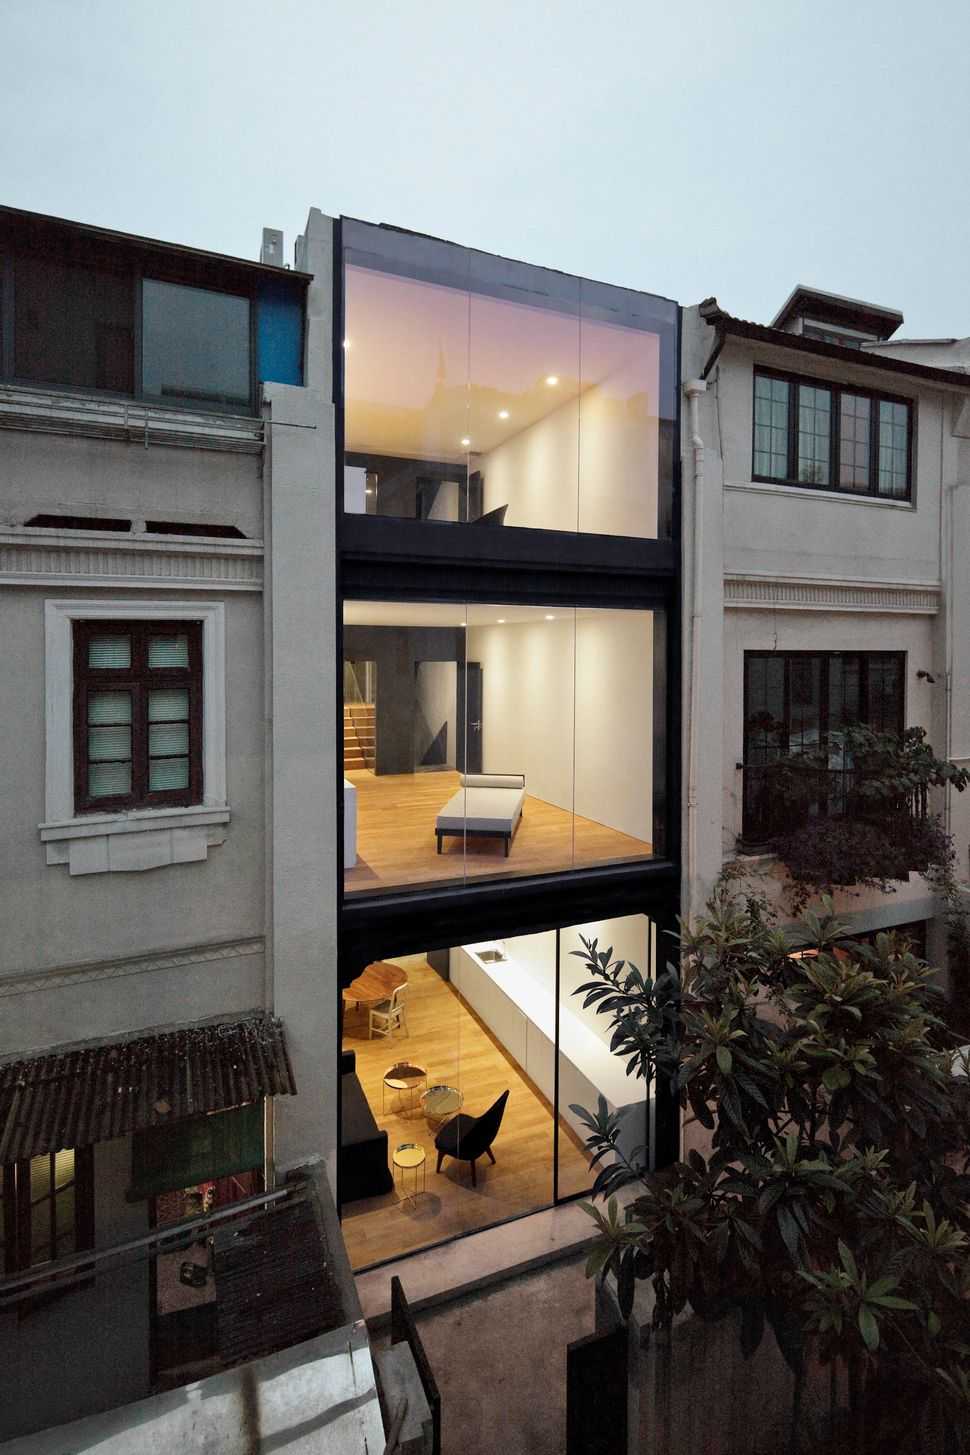 Rethinking the Split House by Neri&Hu. What was once a dilapidated lane house (a fixture of 1930s Shanghai) is now a reinvigo